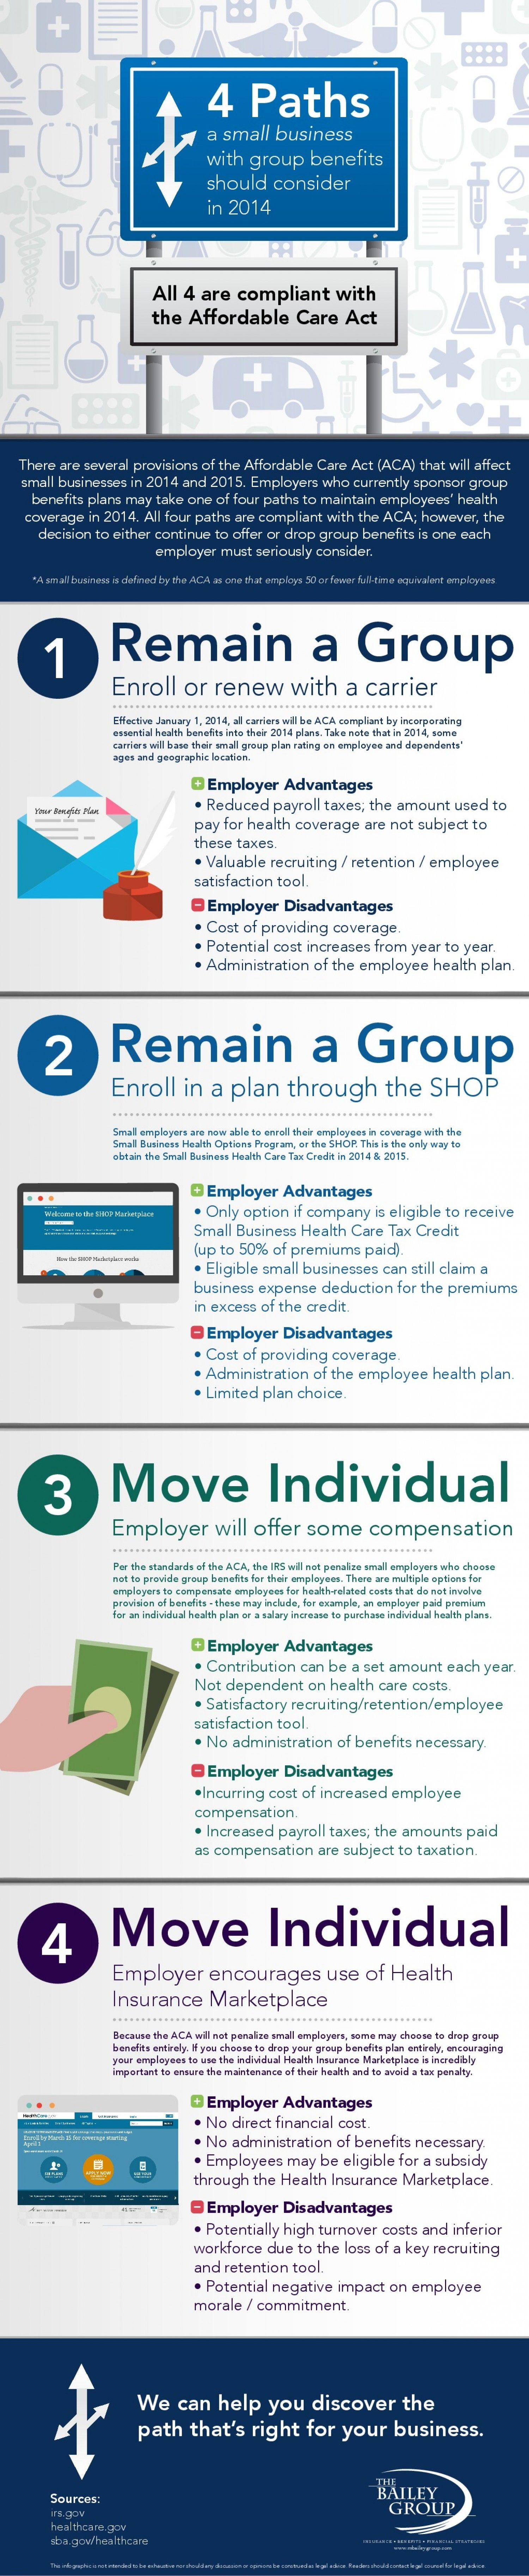 4 Paths A Small Business With Group Benefits Should Consider In 2014 Infographic Business Small Business Business Infographic